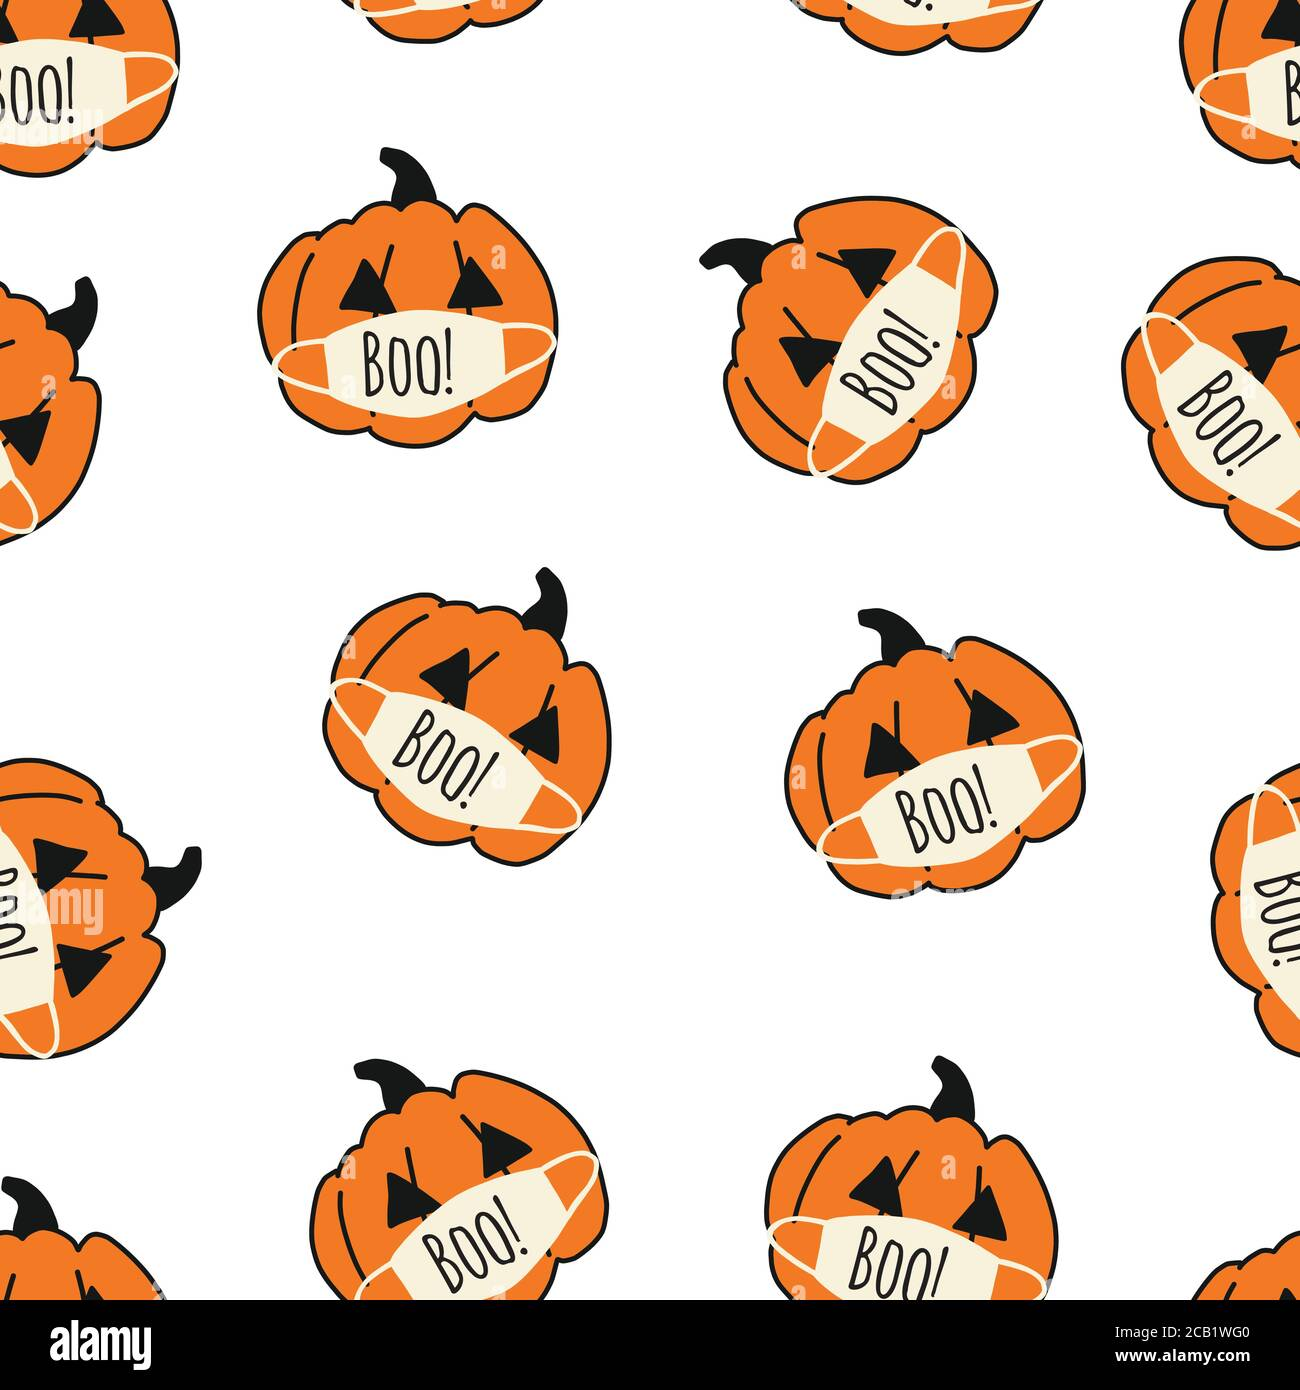 2020 Halloween Background Corona Halloween Pumpkin Seamless Vector Pattern. Pumpkins wearing